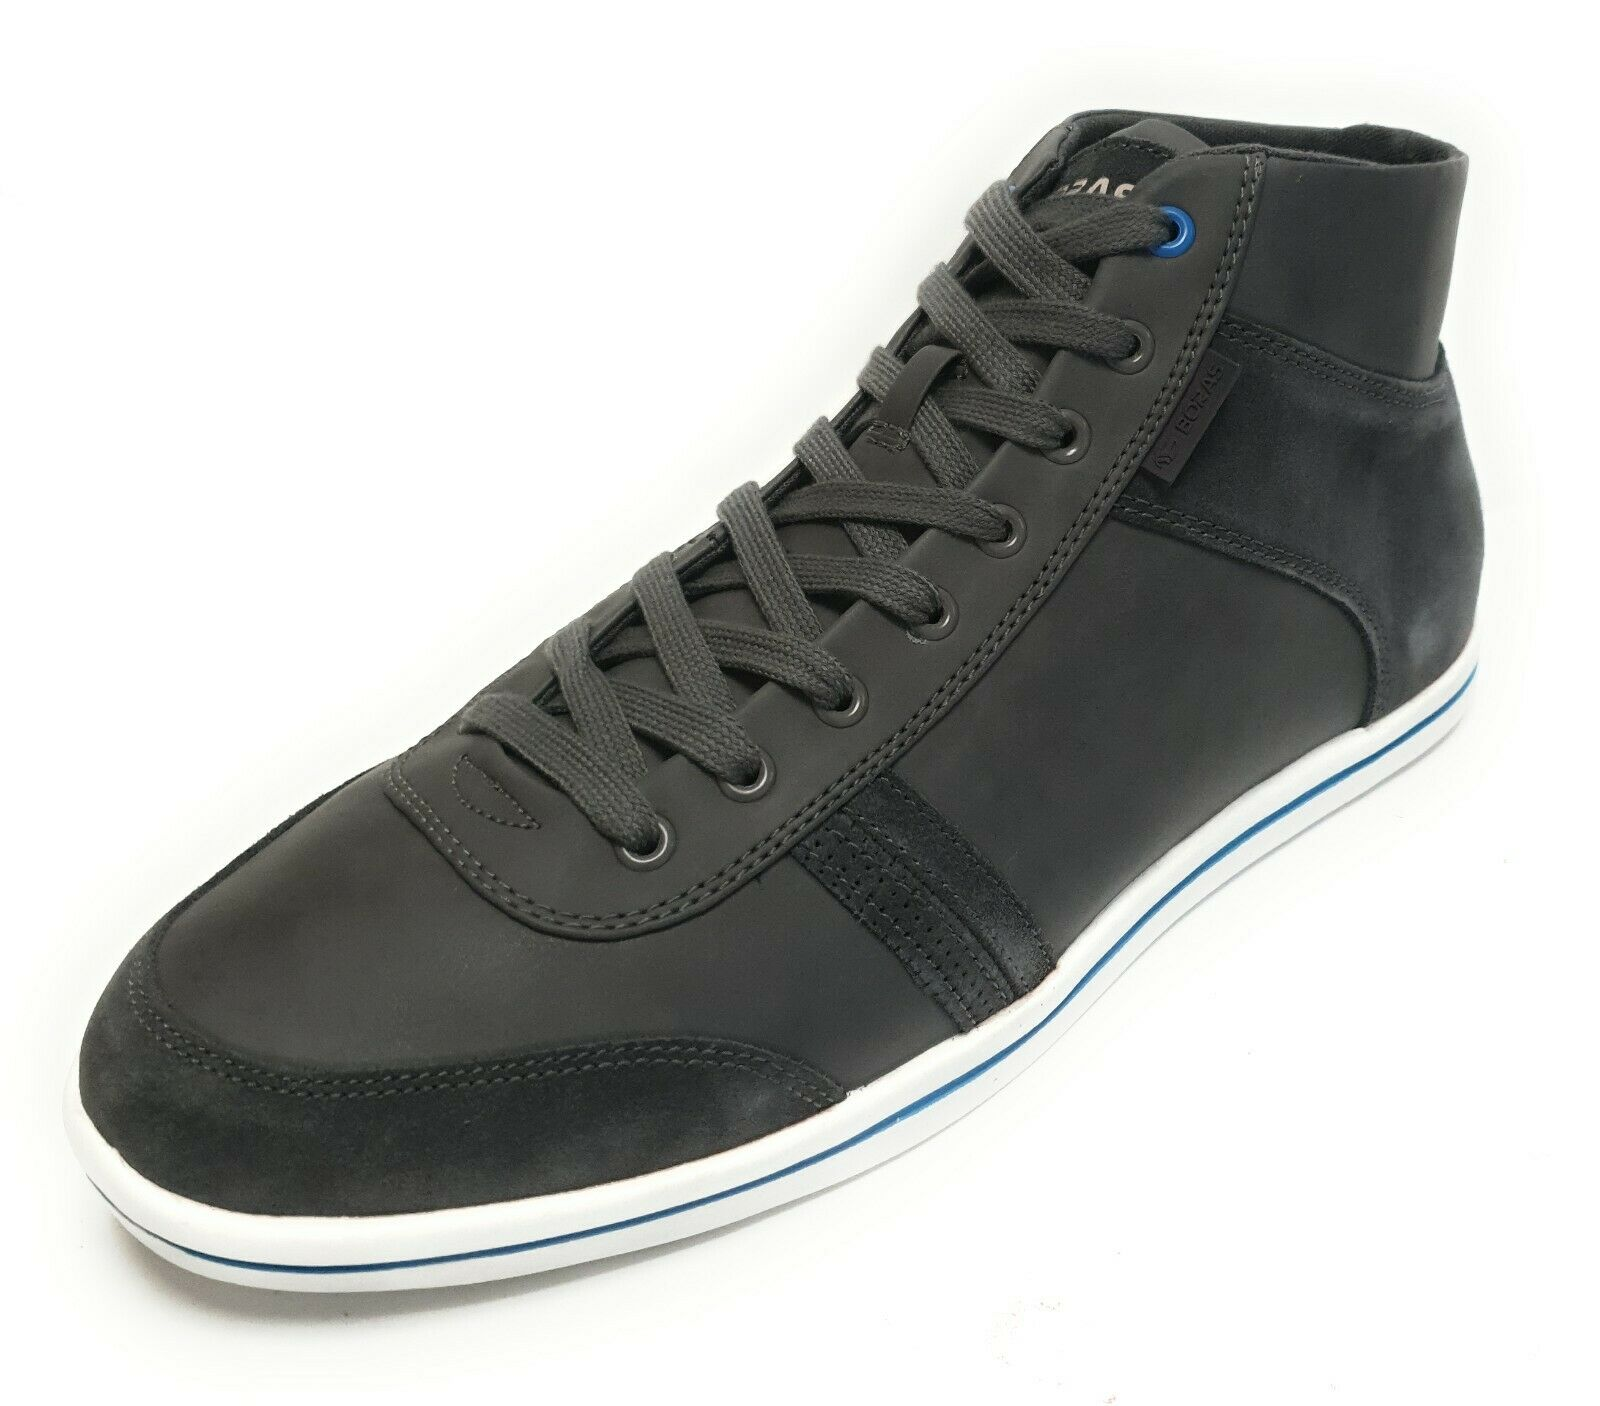 Boras contact Mid 3283-1230 Hommes baskets On chaussures Basket Chaussure Lacets